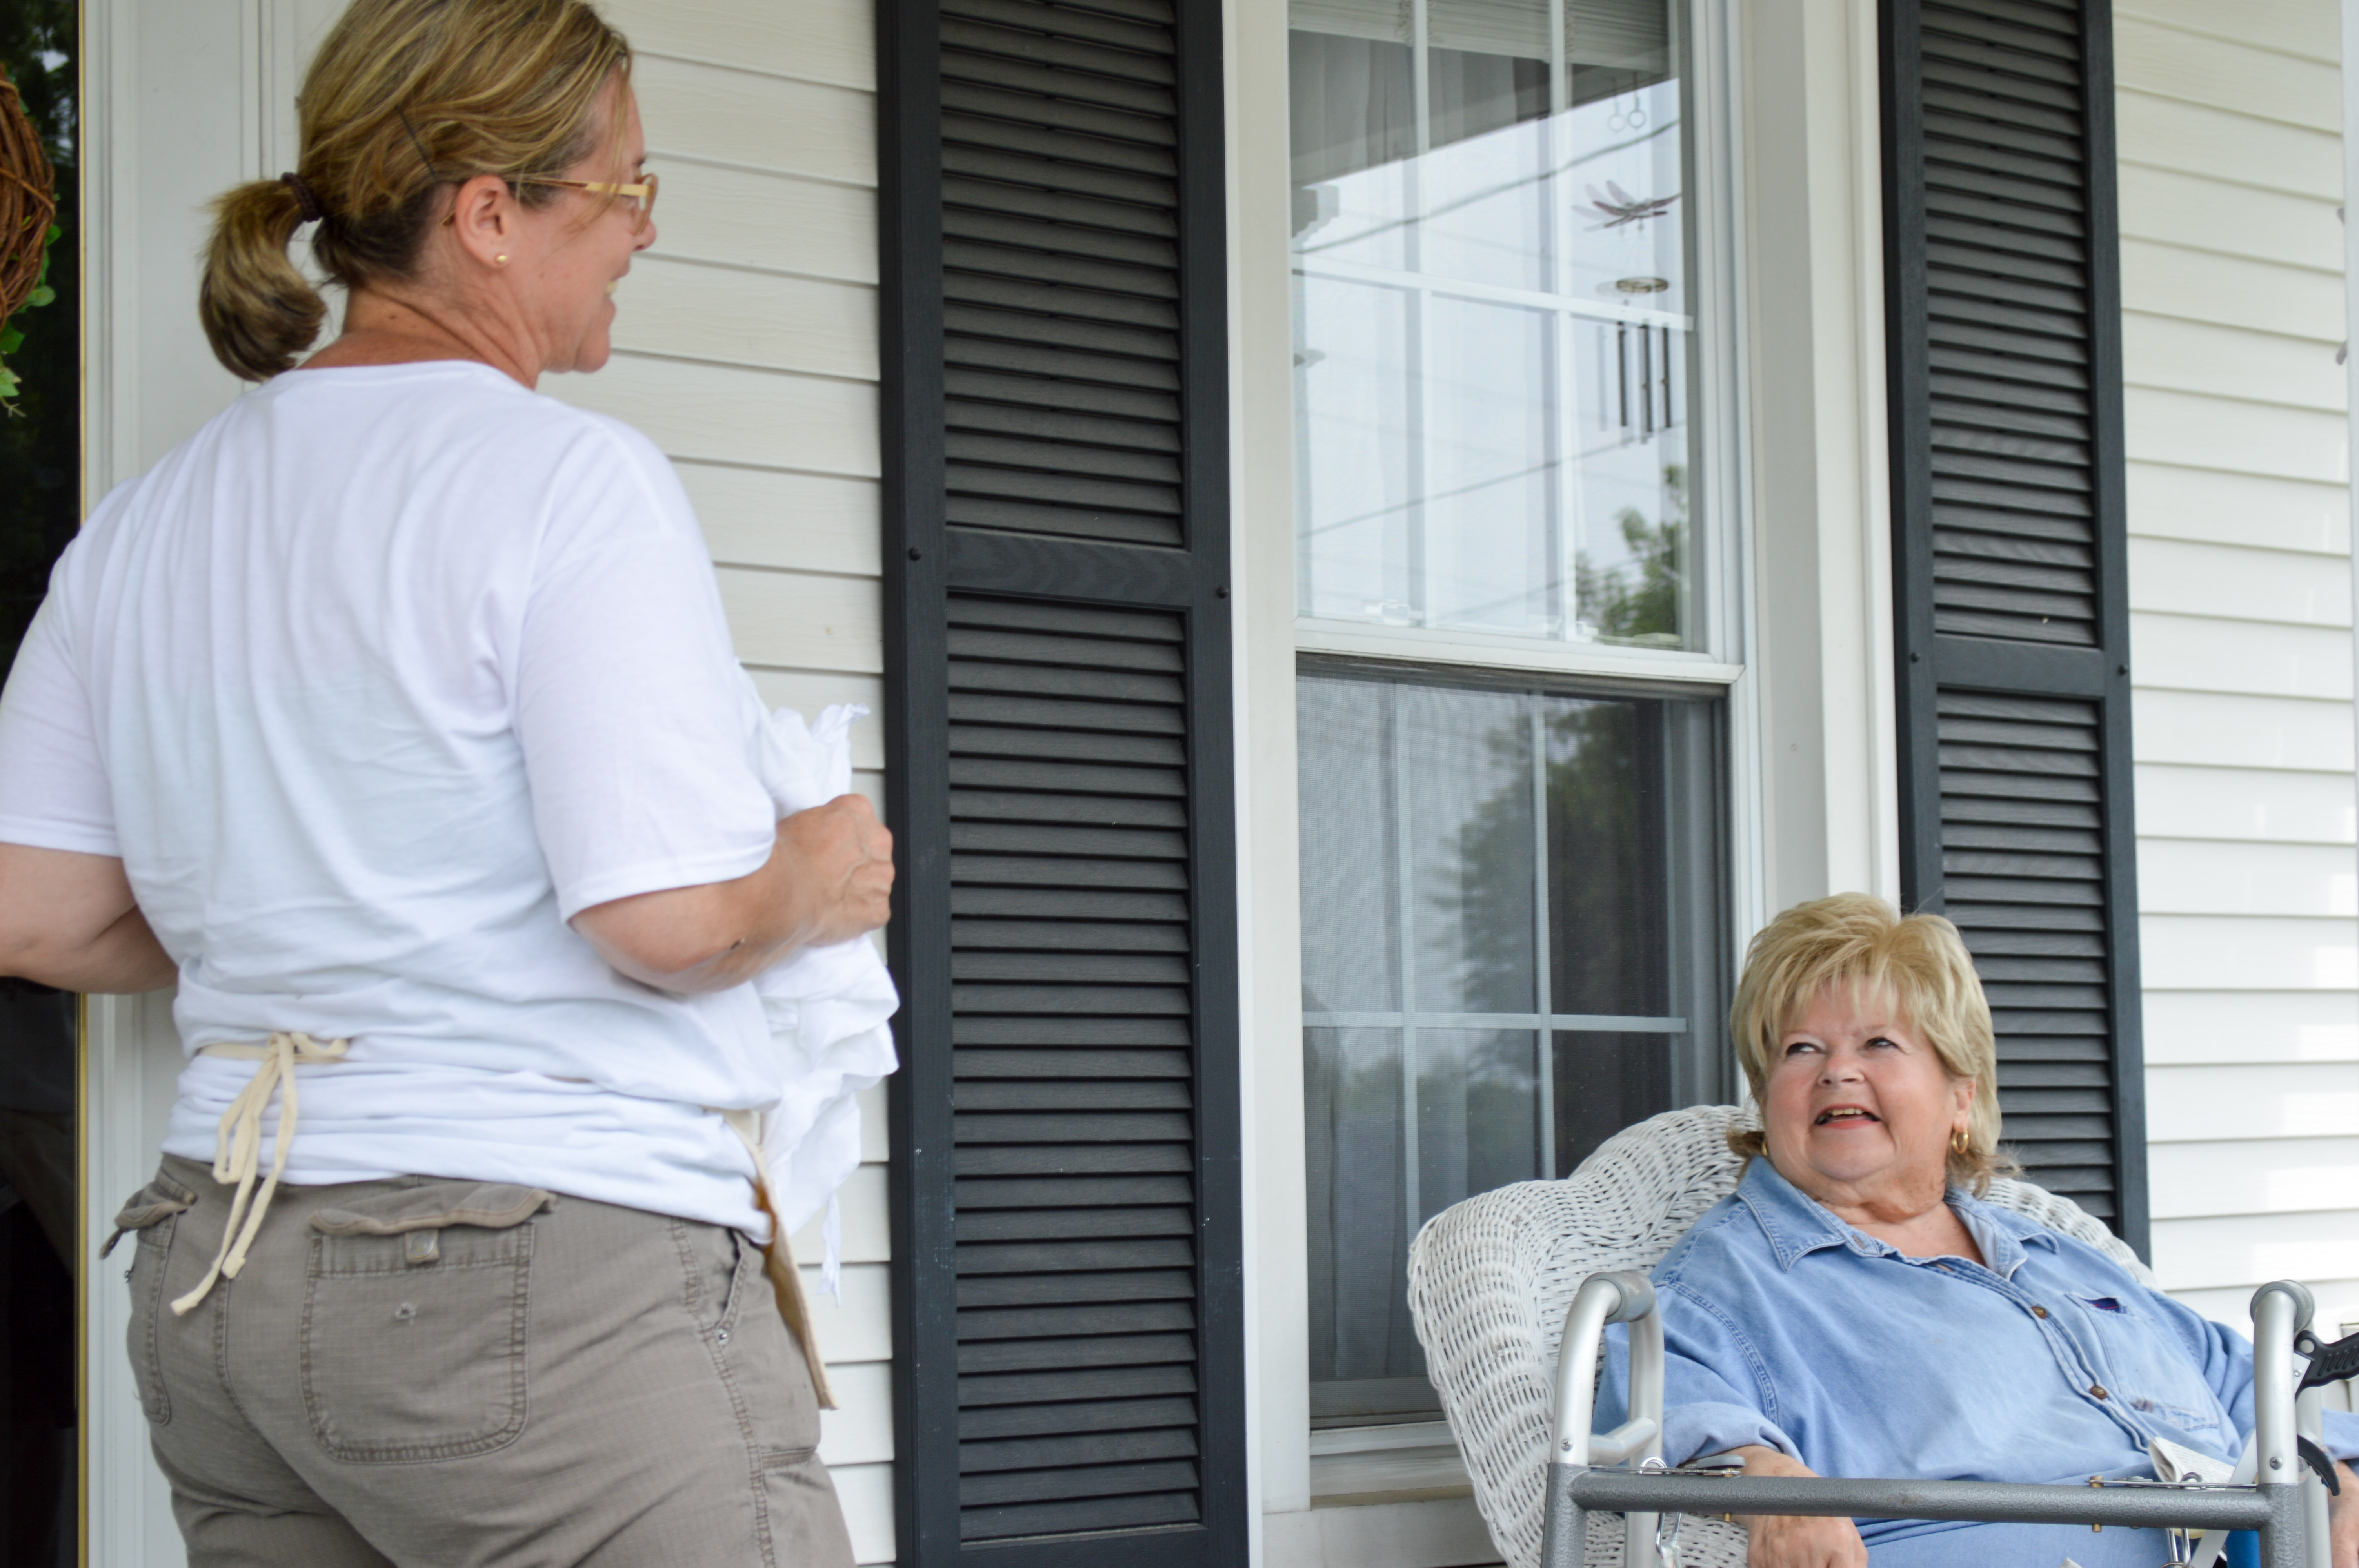 Making Homes Safer for Older Adults